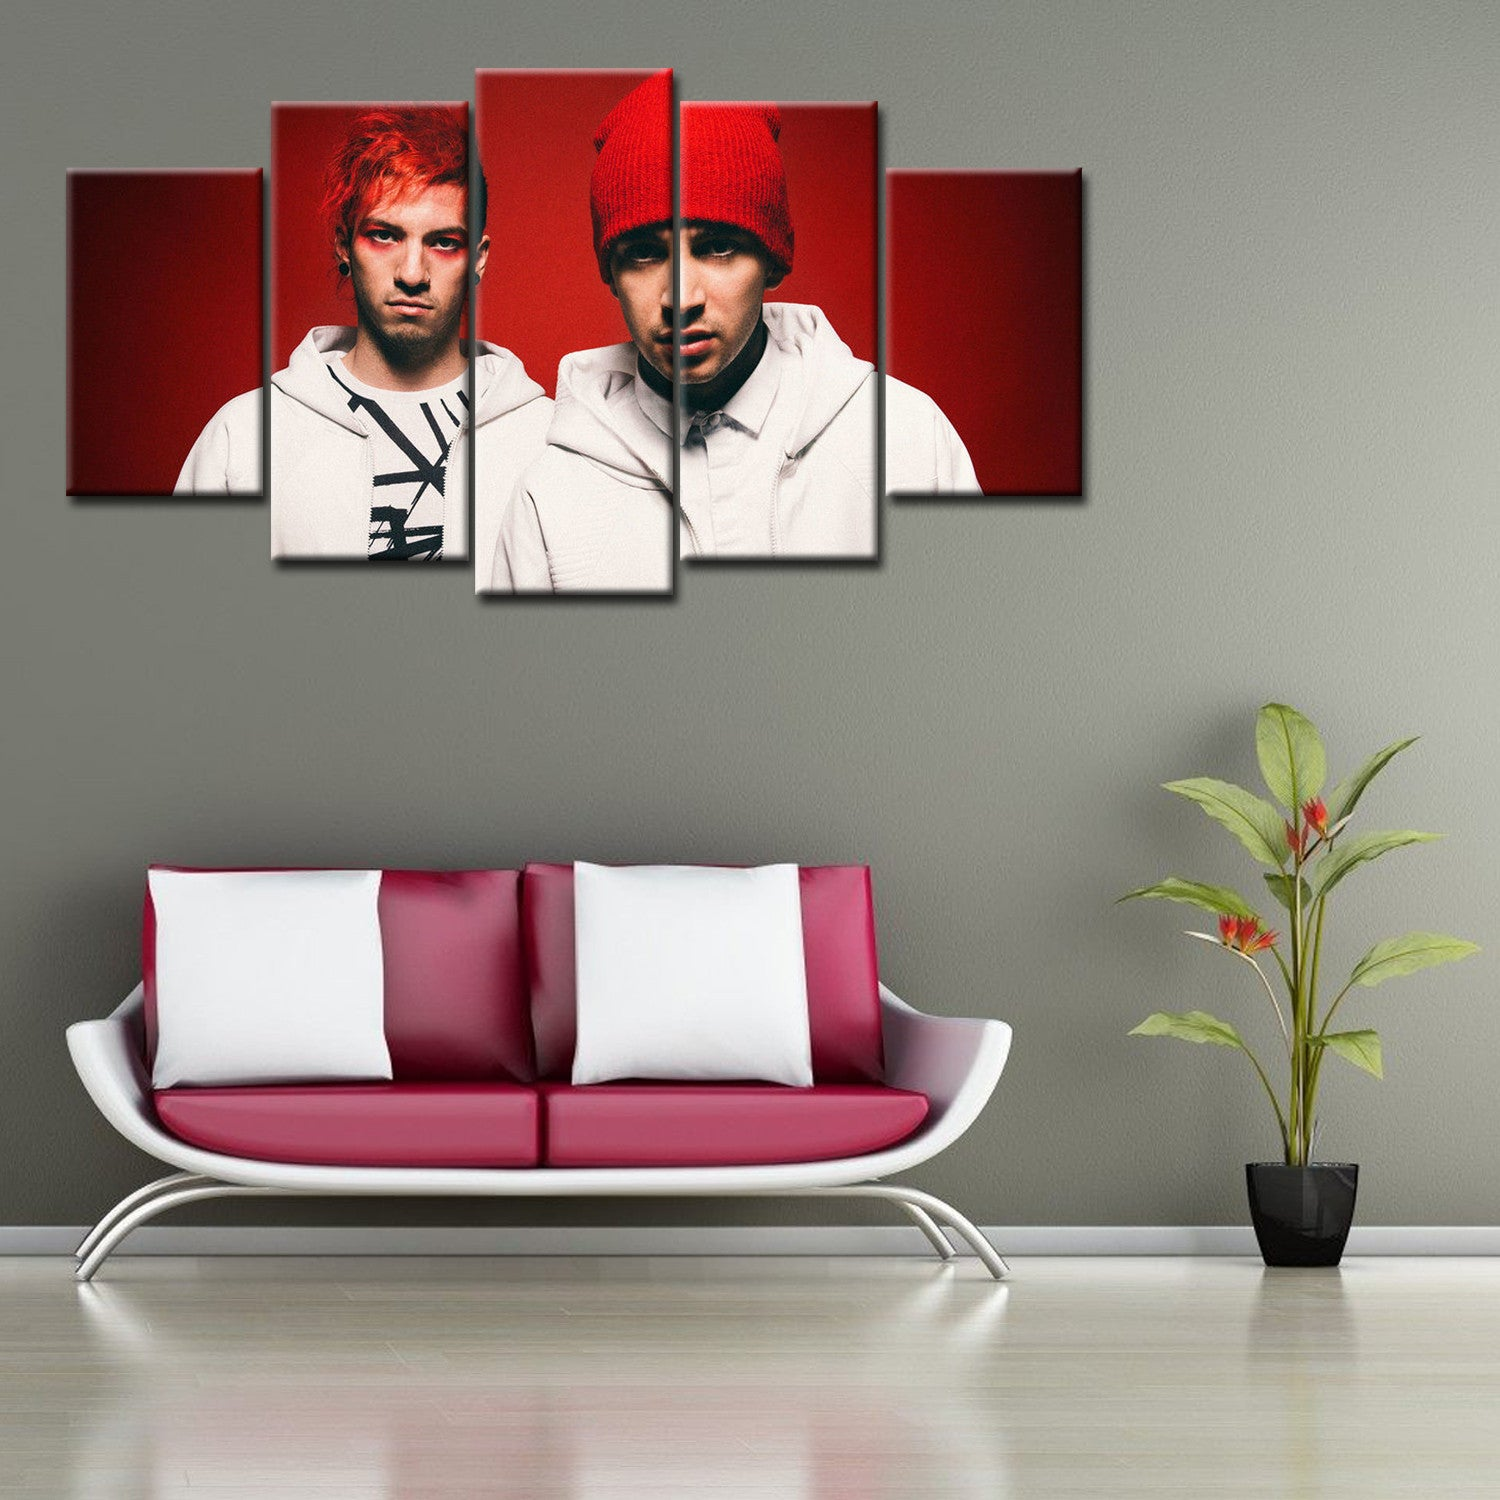 5 Pieces Blurry Face Twenty One Pilots Canvas Wall Art - HD Quality